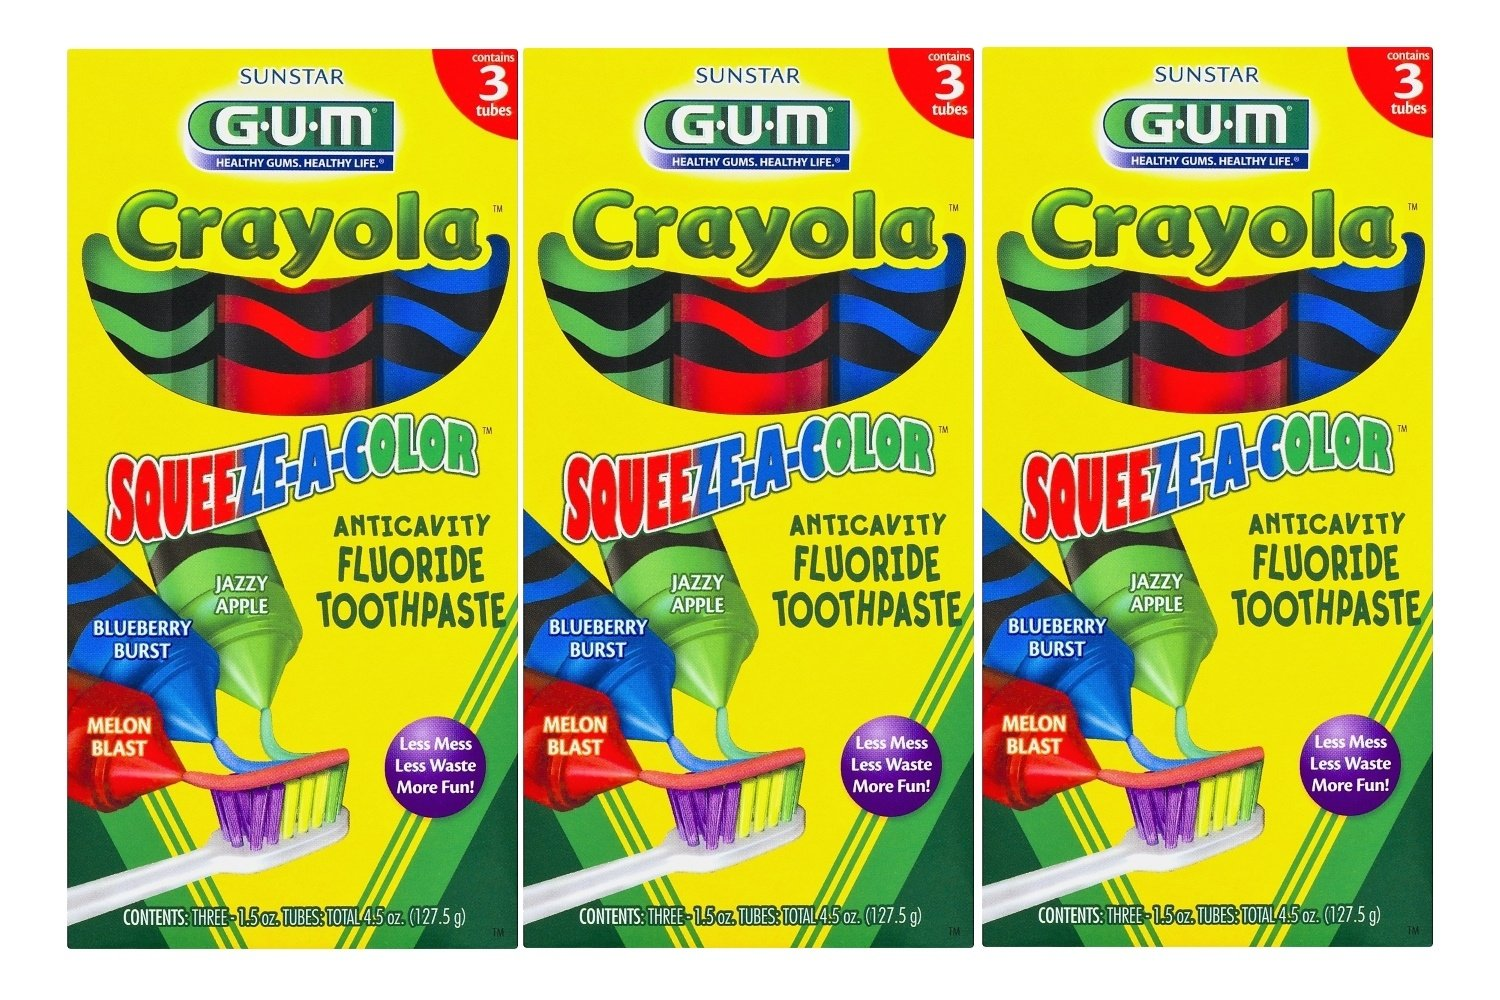 Sunstar GUM Crayola Squeeze-A-Color Anti-Cavity Fluoride Toothpaste 1.5 Ounce, 3 Tubes (Pack of 3)